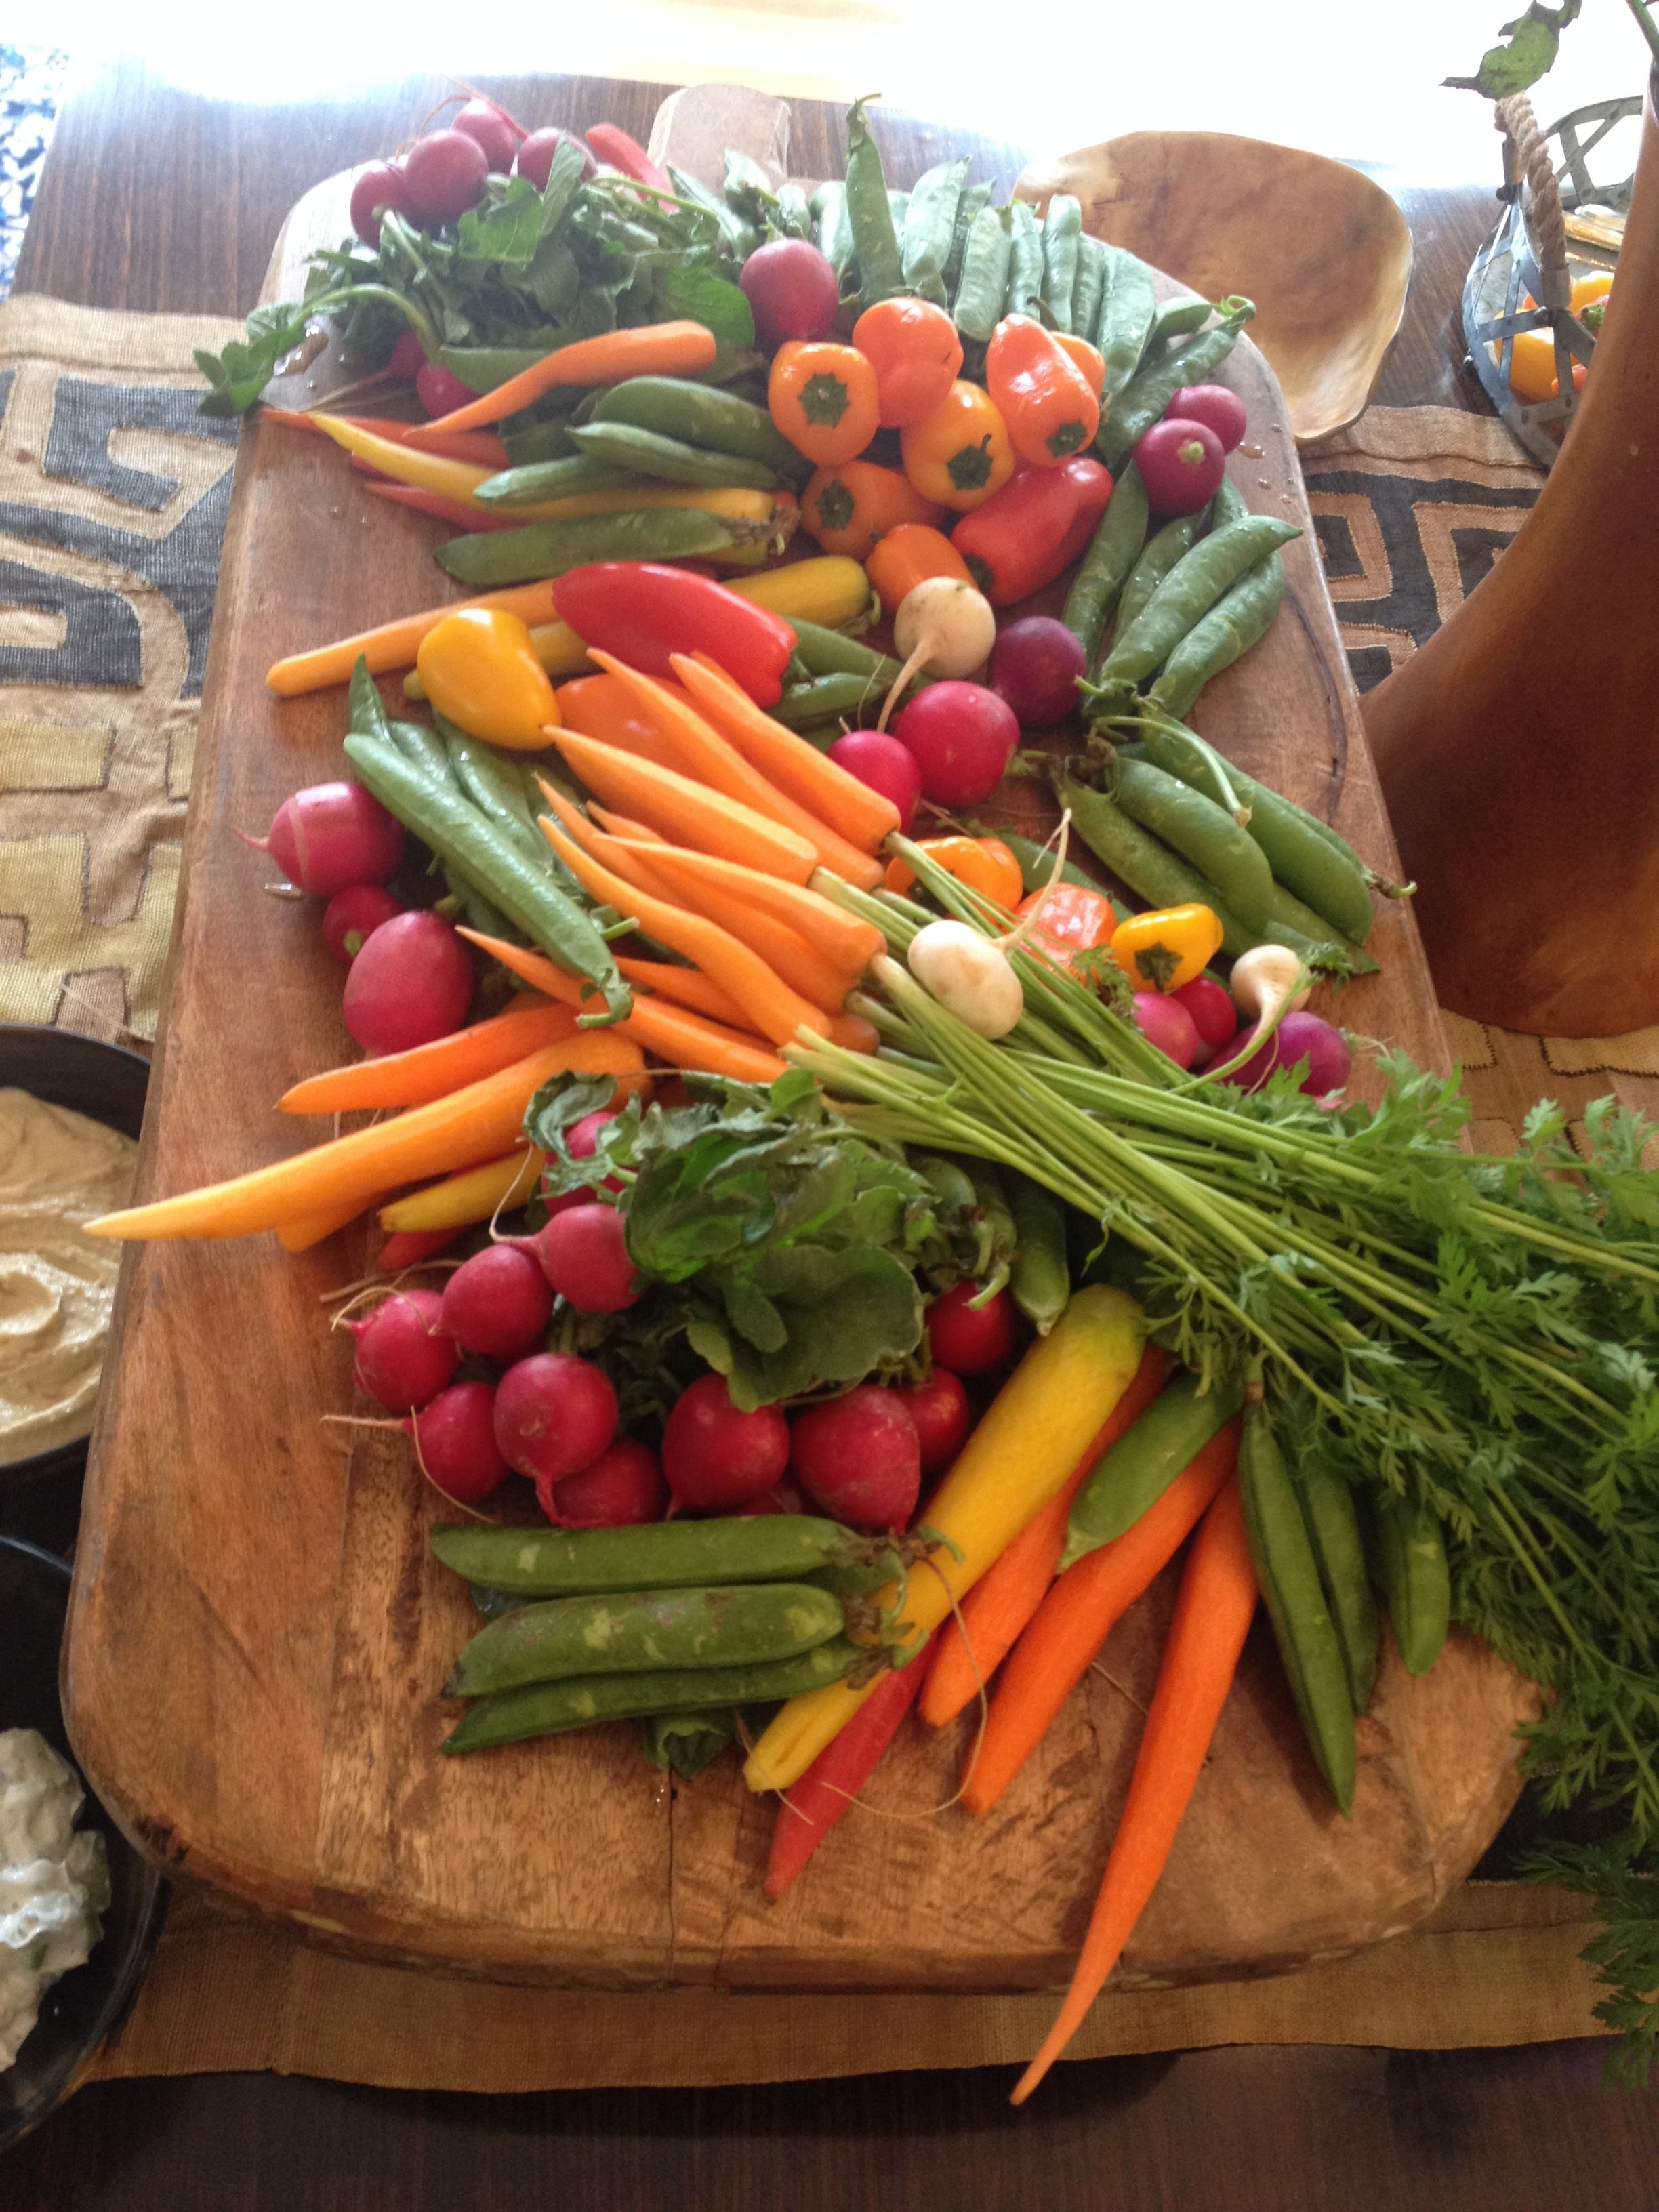 Crudite photo.jpg